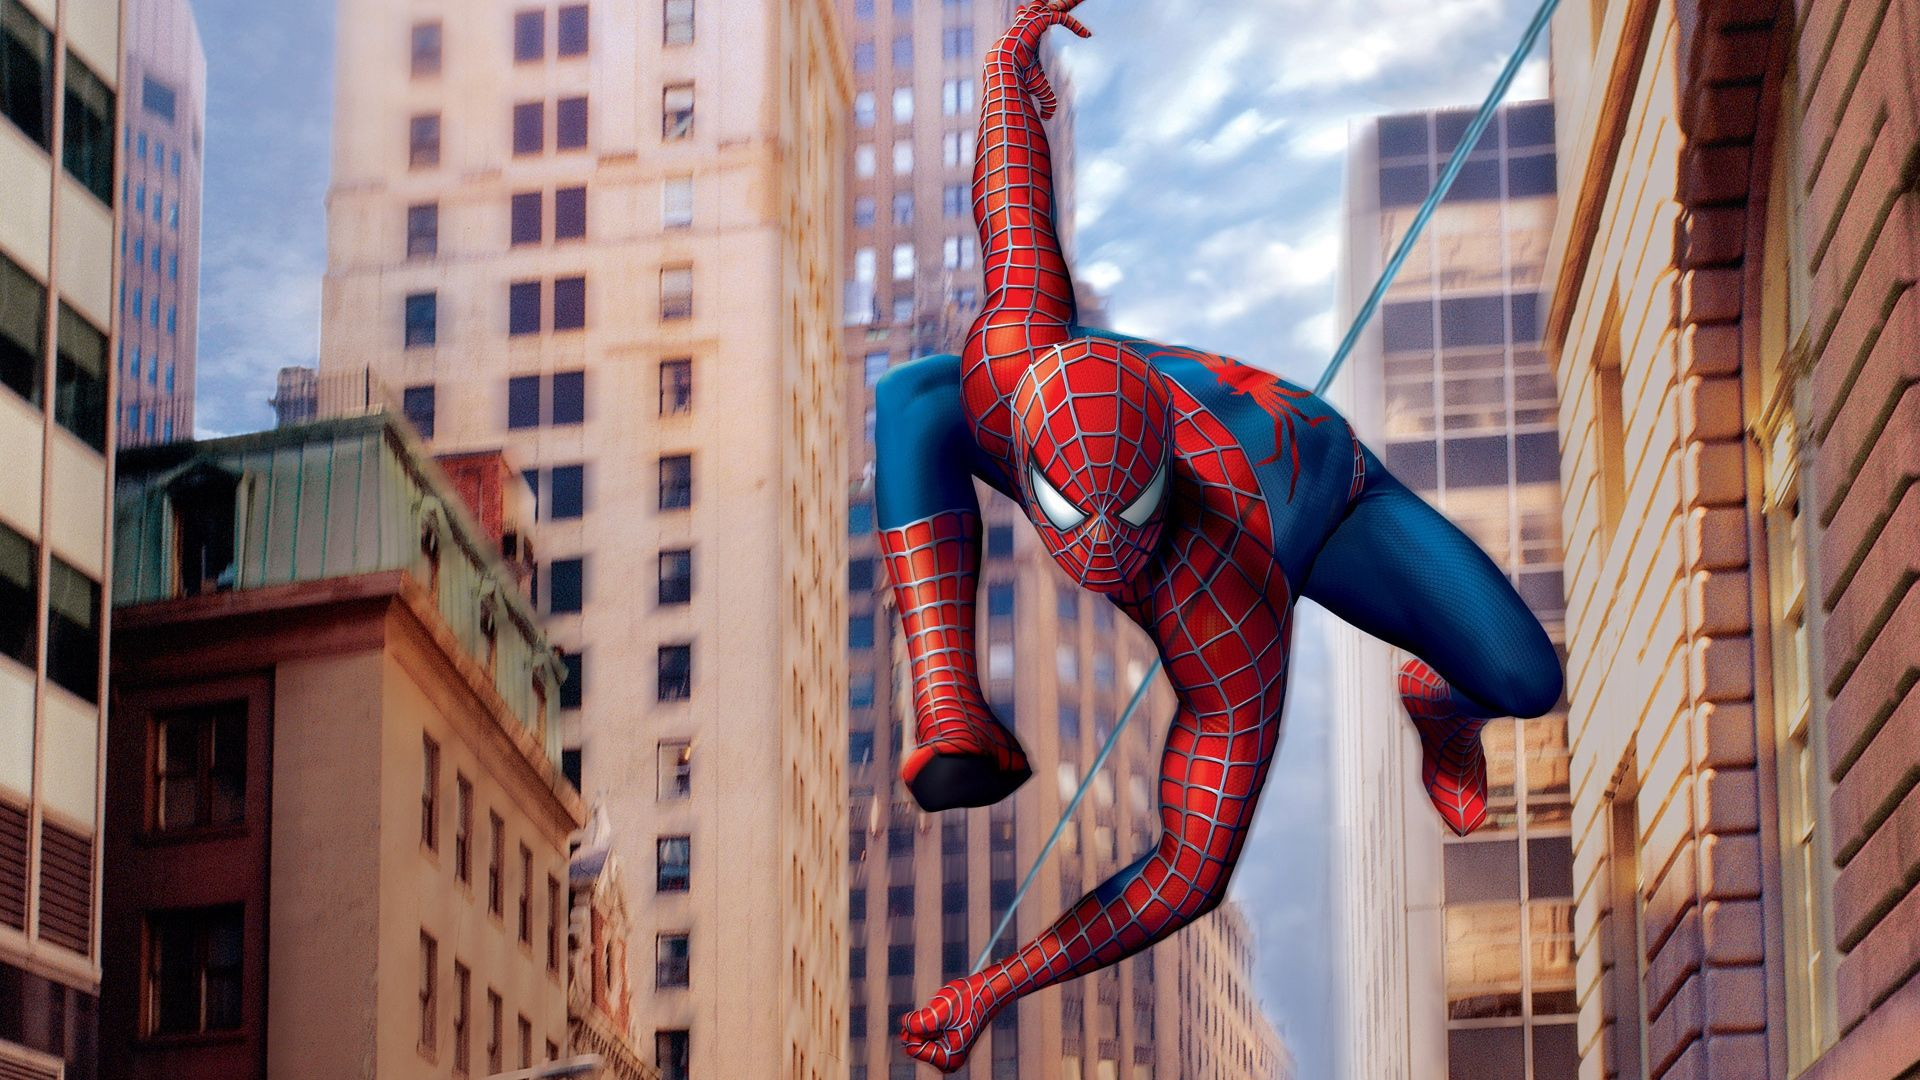 spider man cartoon hanging with webs high definition wallpapers hd